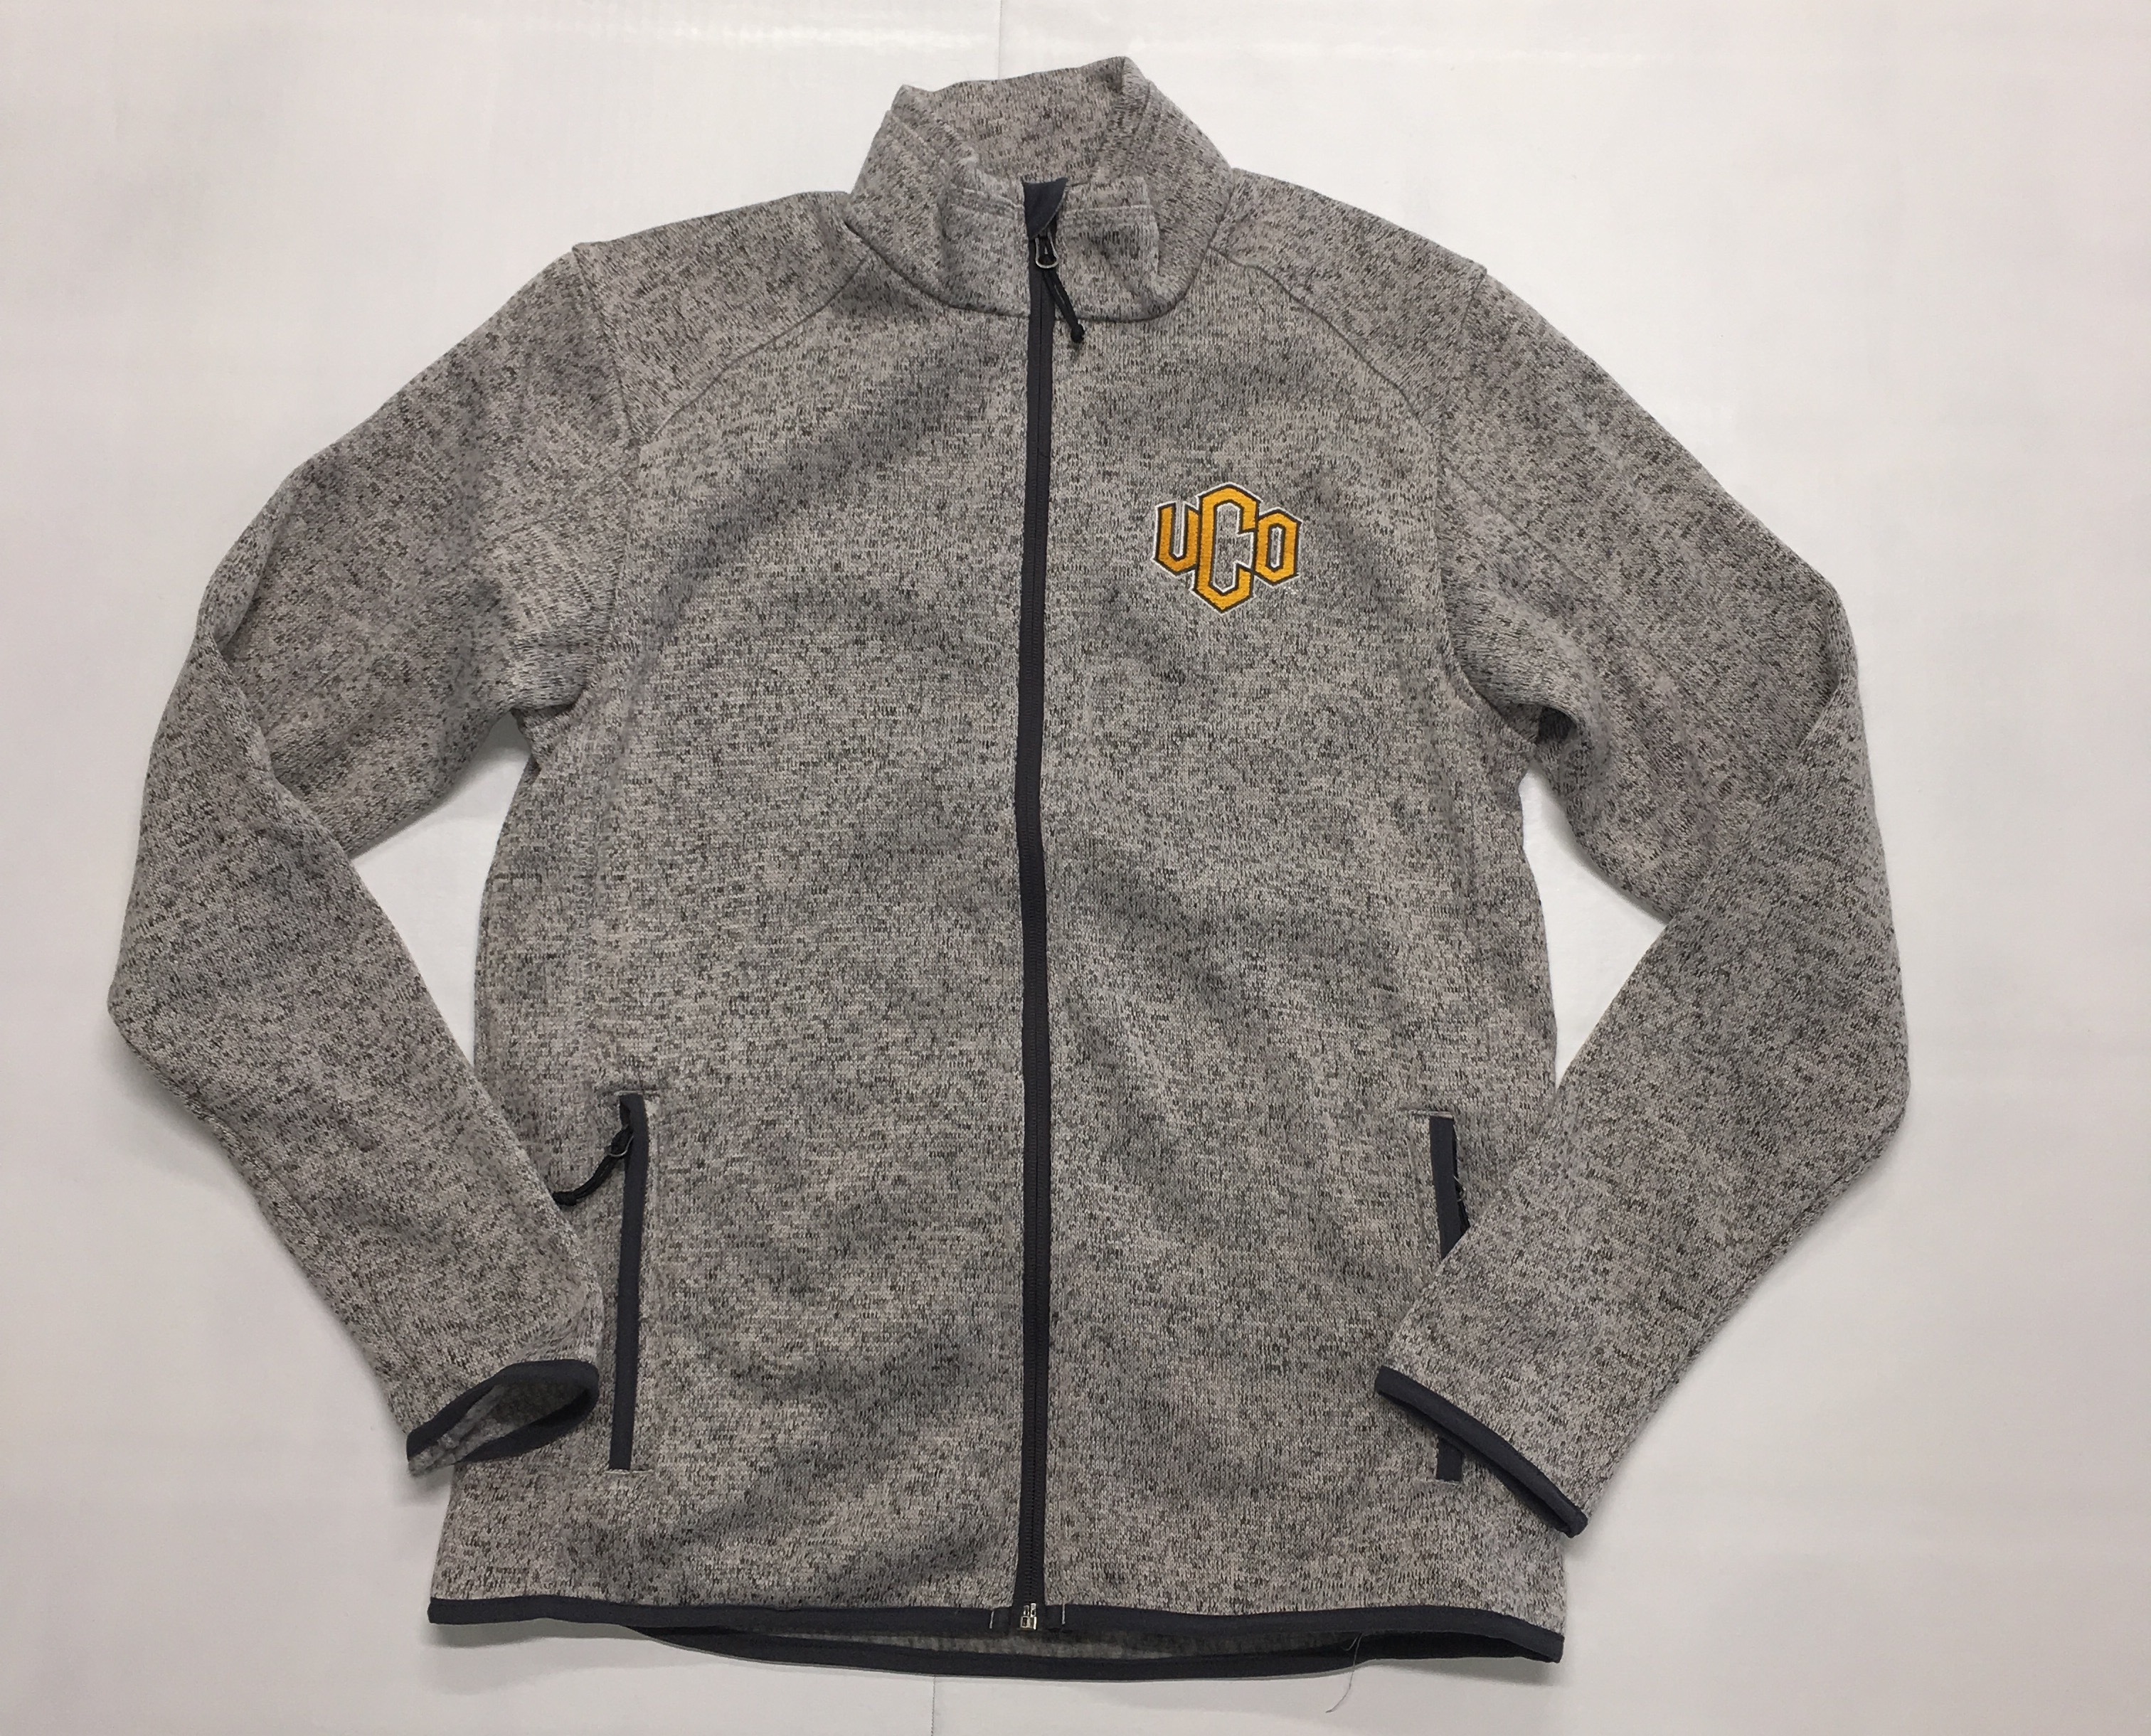 UCO Fleece Jacket